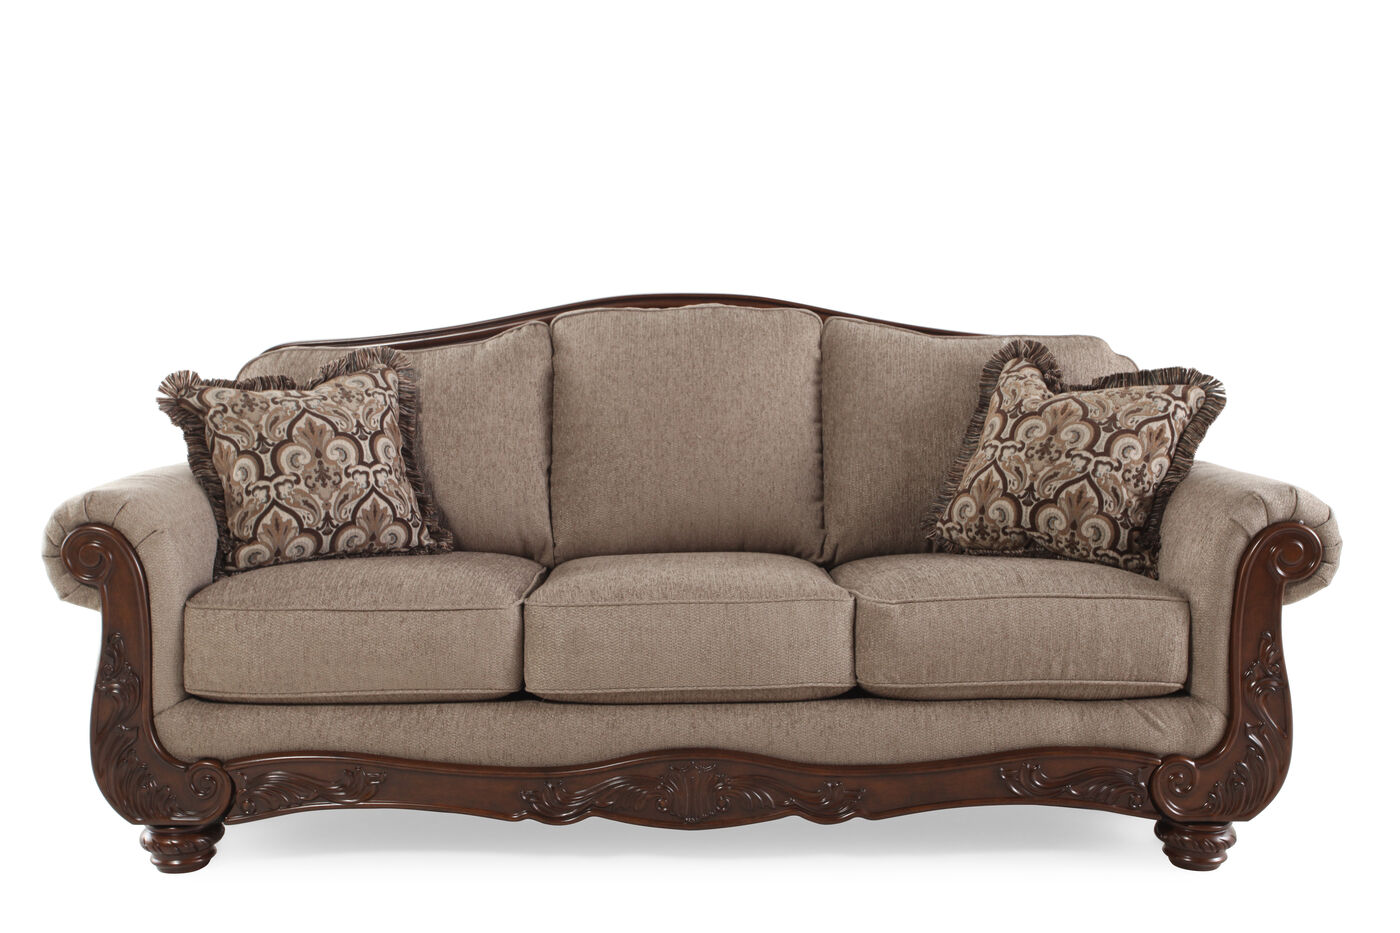 Mathis Brothers Sofa Brands Rs Gold Sofa